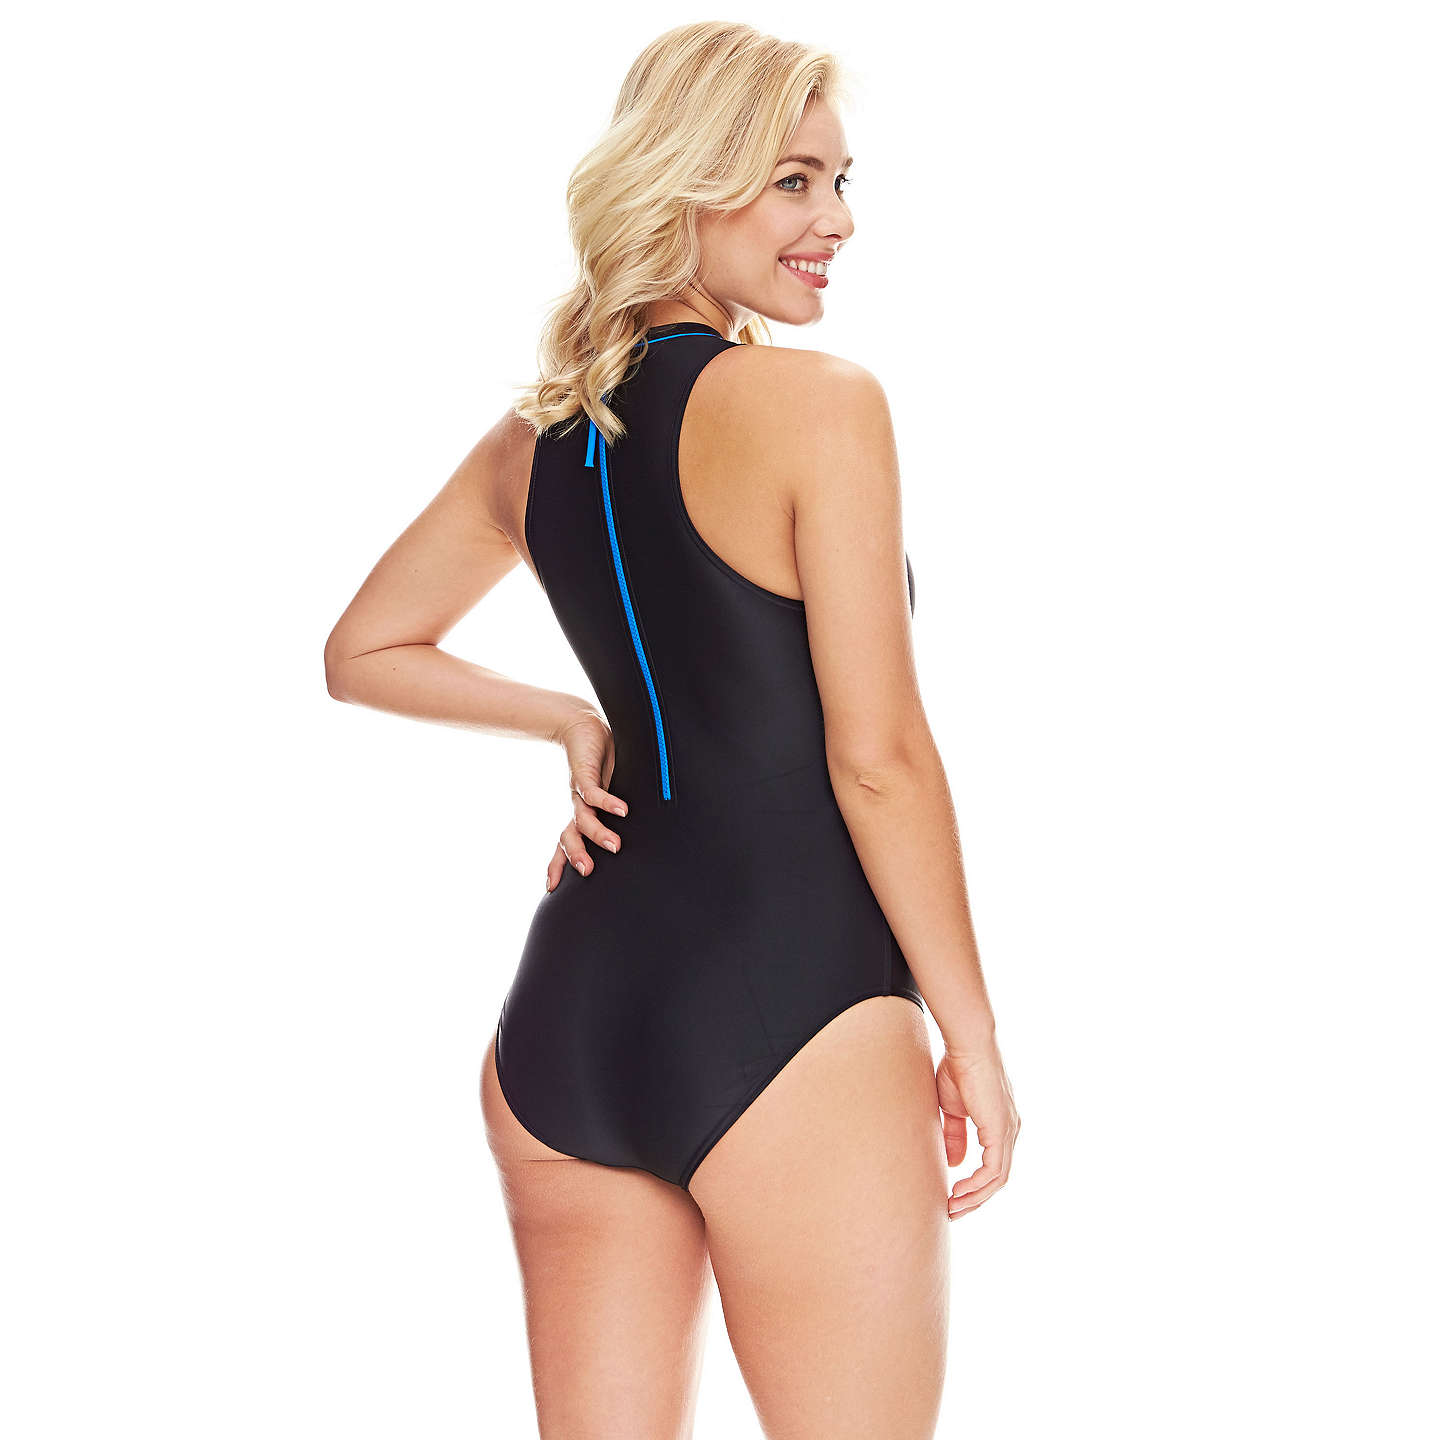 BuyZoggs Cabarita Zip High Neck Swimsuit, Black/Blue, 8 Online at johnlewis.com